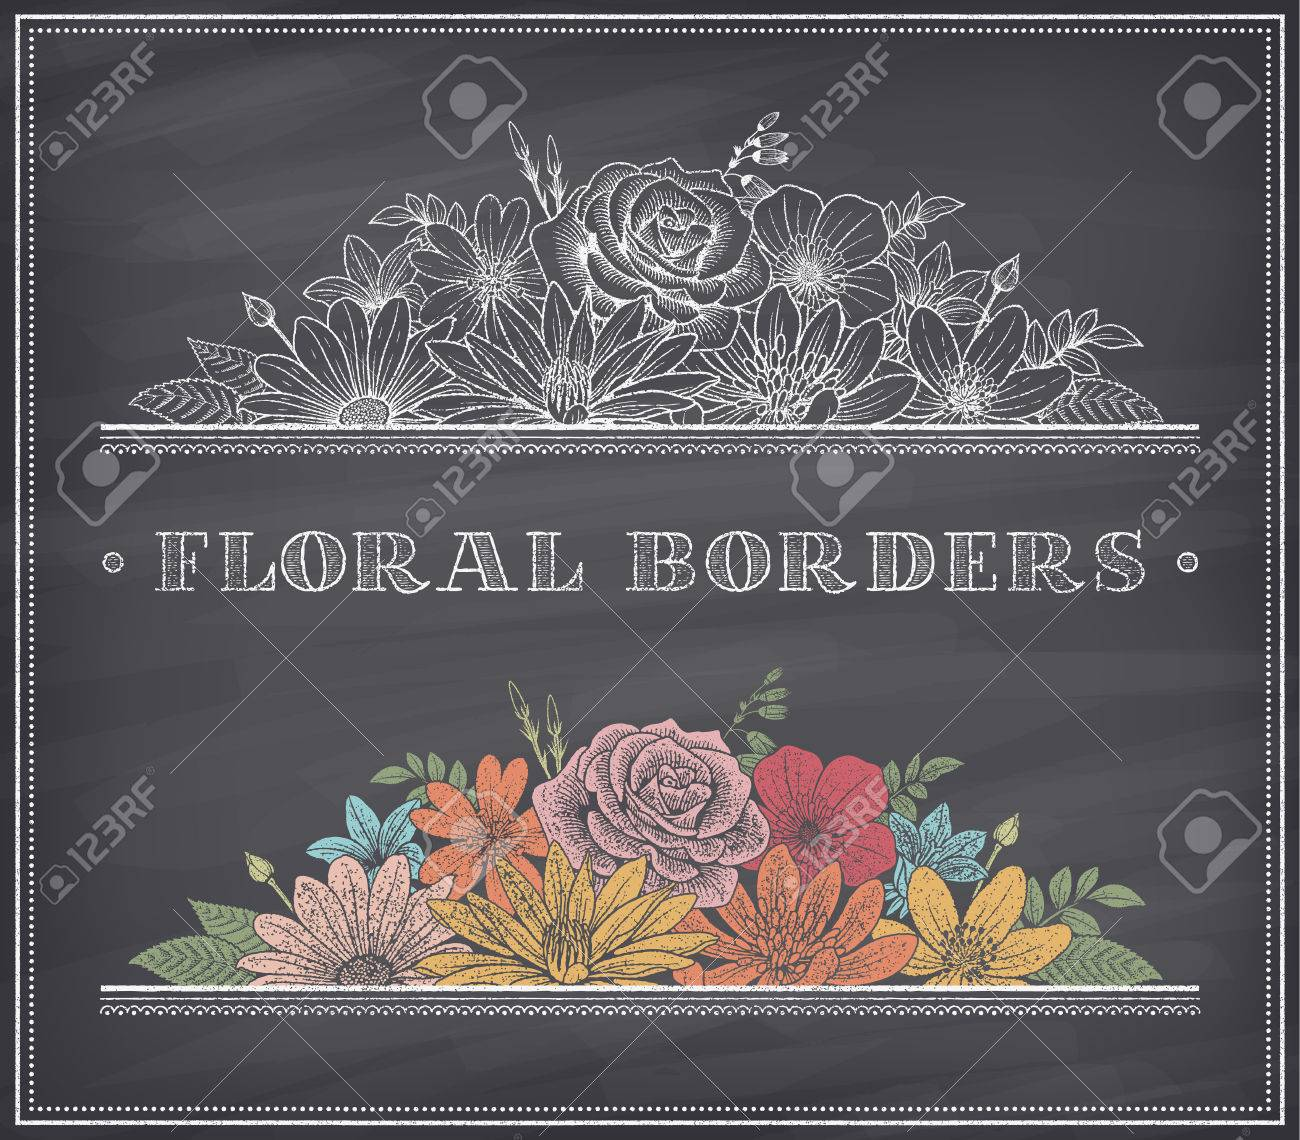 Border Decoration Composed Of Detailed Colorful Flowers Illustrations With  Chalk Drawing Effect On A Nice Shaded